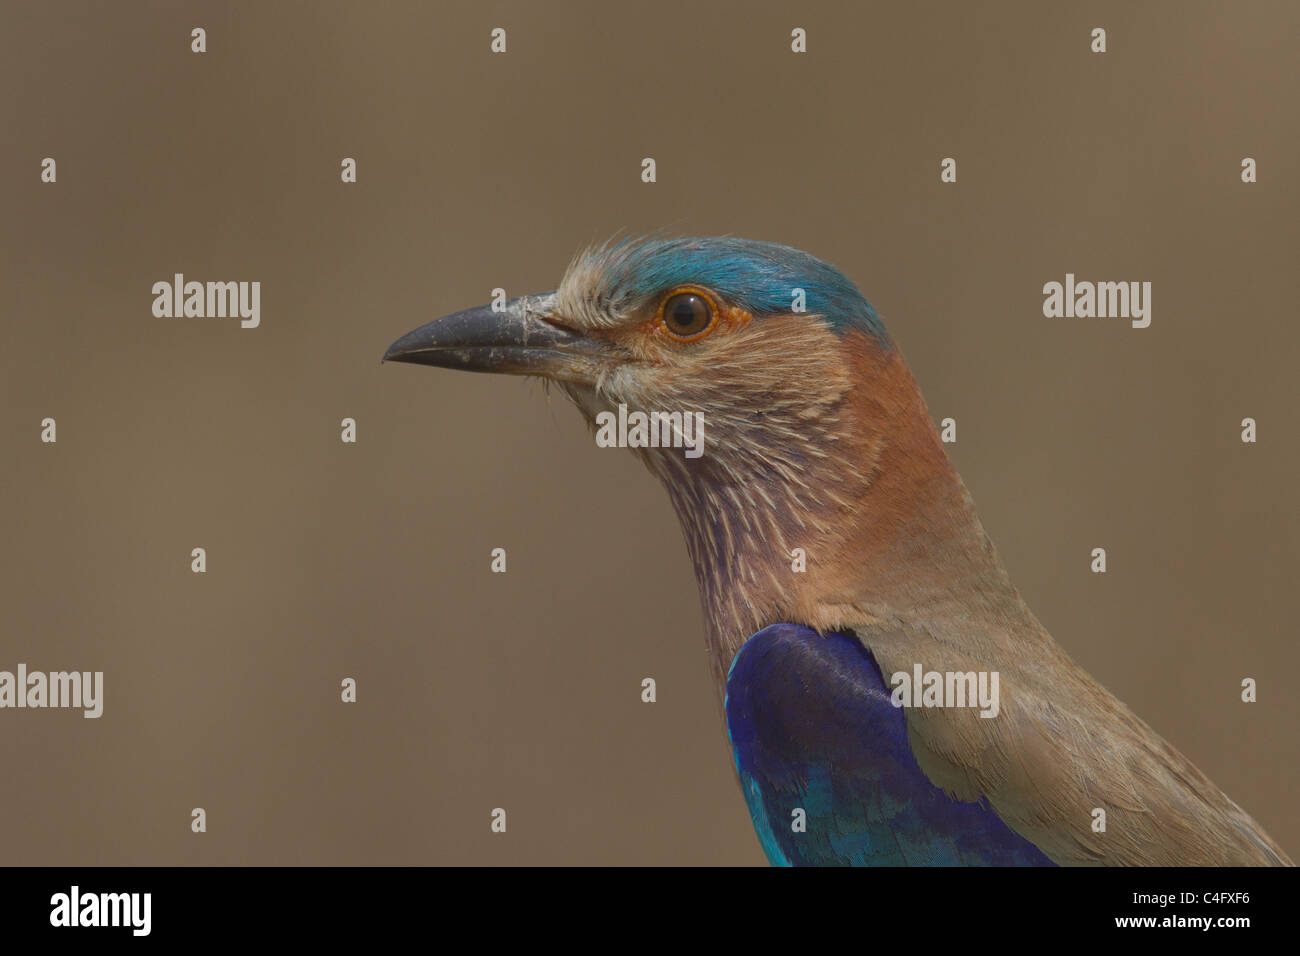 Indian Roller (Coracias benghalensis), also known as Blue Jay, portrait from Kanha National Park, Madhya Pradesh, - Stock Image